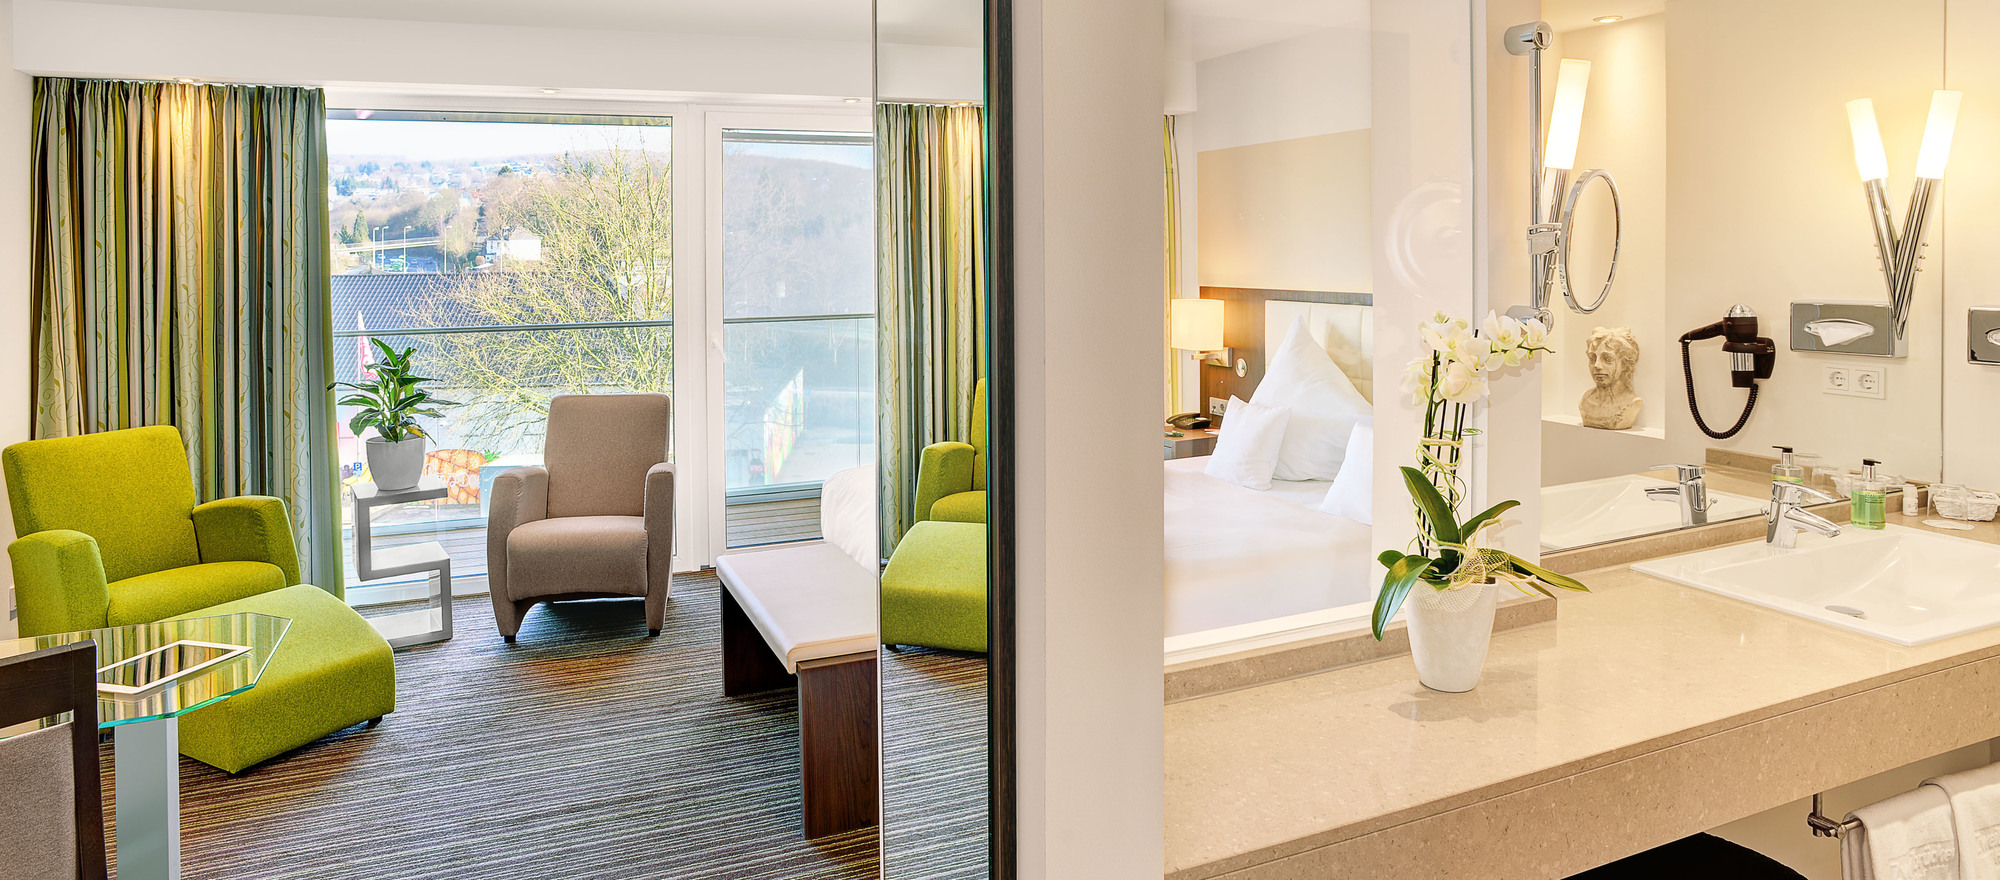 Comfortable and modern furnished douple-room superior plus in the 4-star hotel Ringhotel Zweibruecker Hof in Herdecke